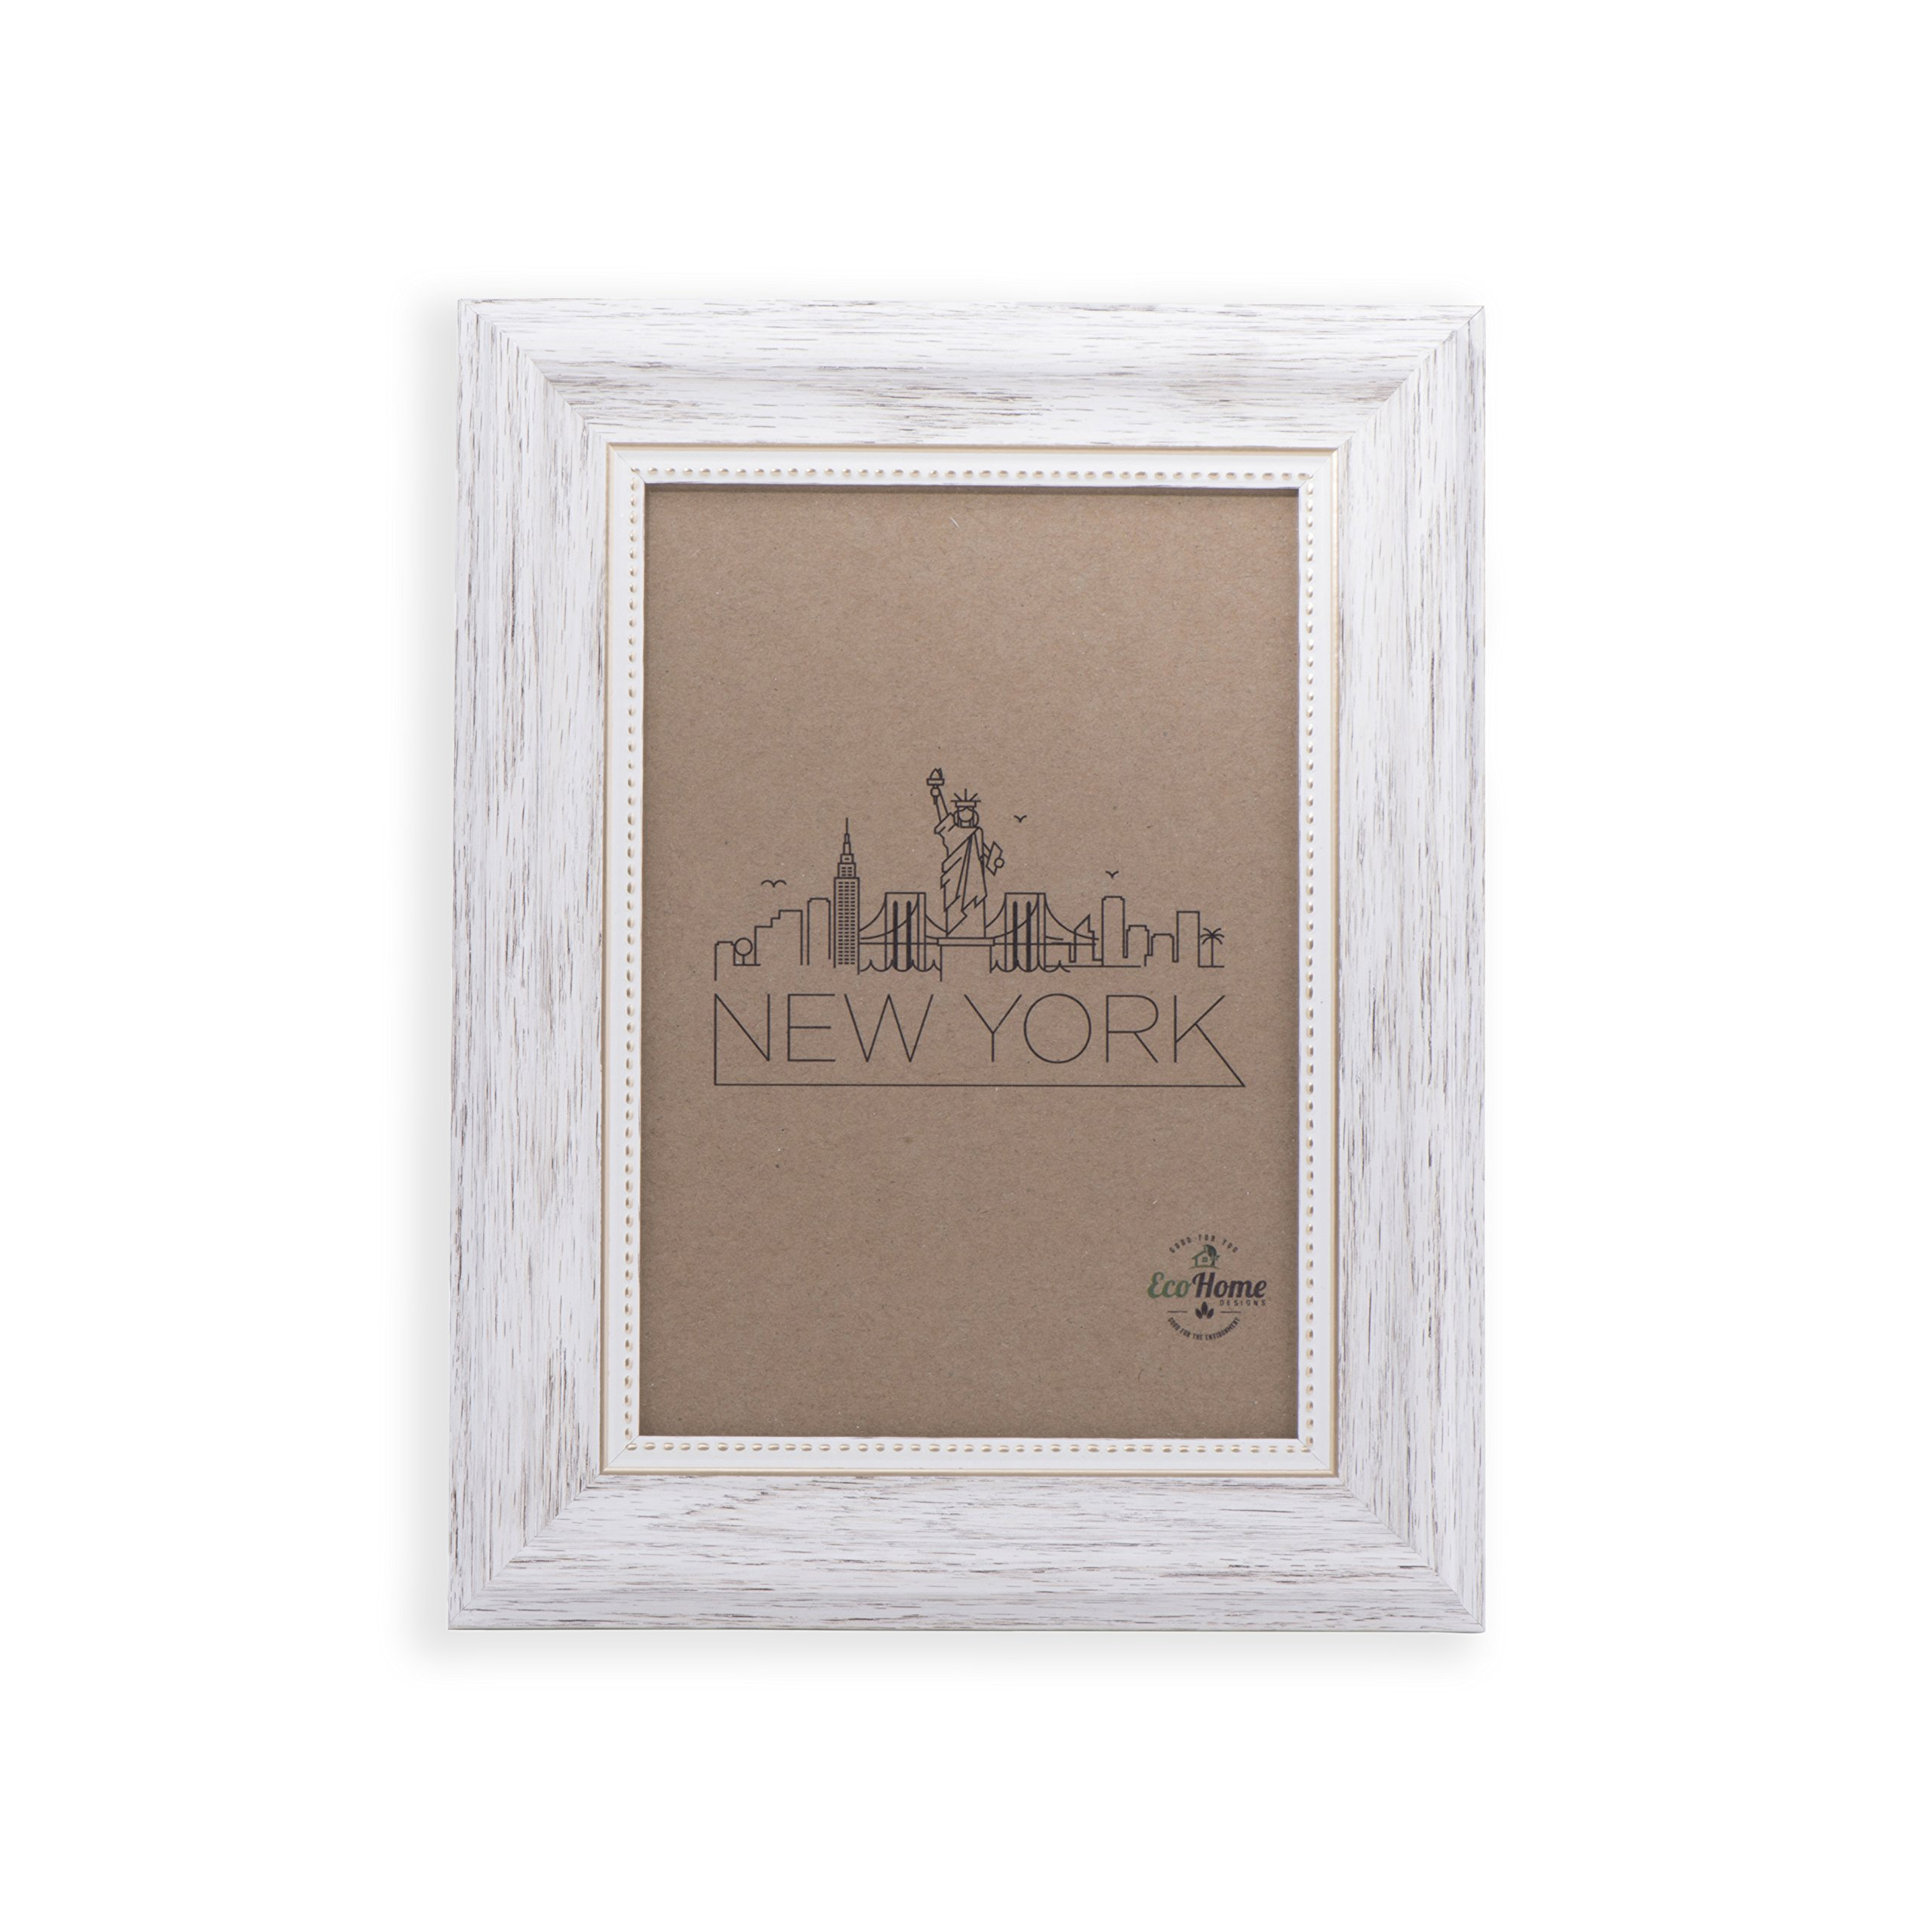 8x10 Picture Frame White/Gold - Mount/Desktop Display, Frames by EcoHome by EcoHome